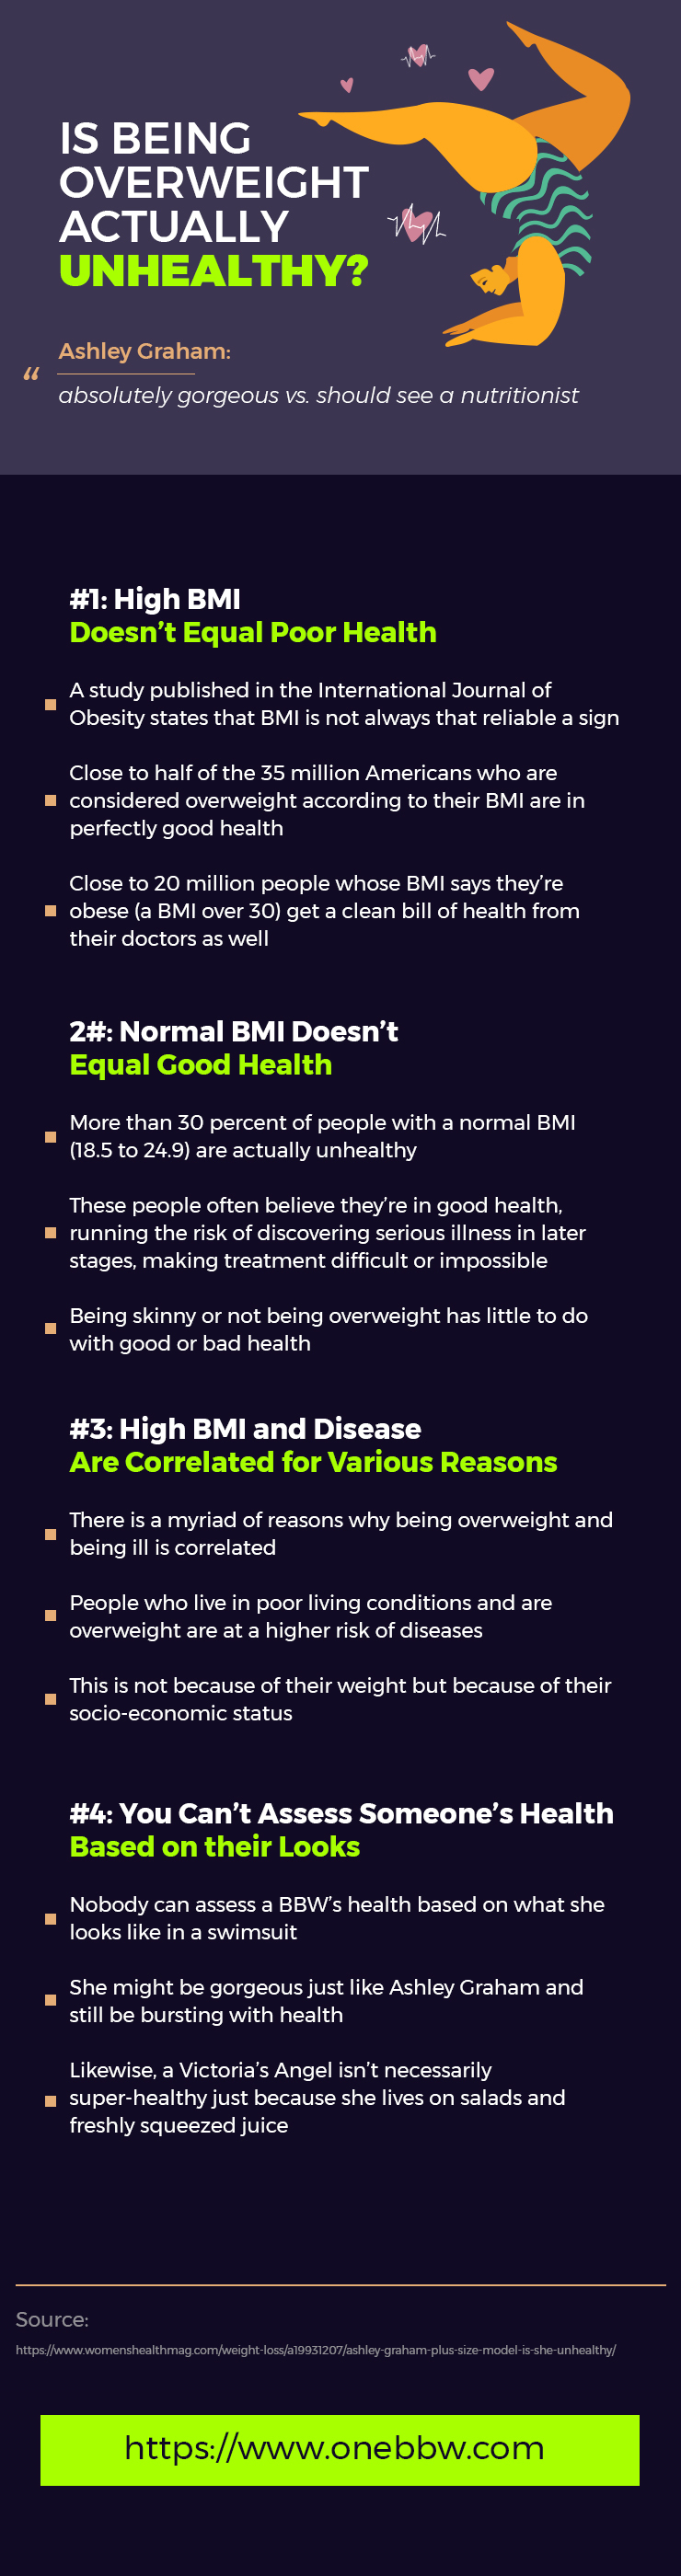 Is Being Overweight Actually Unhealthy